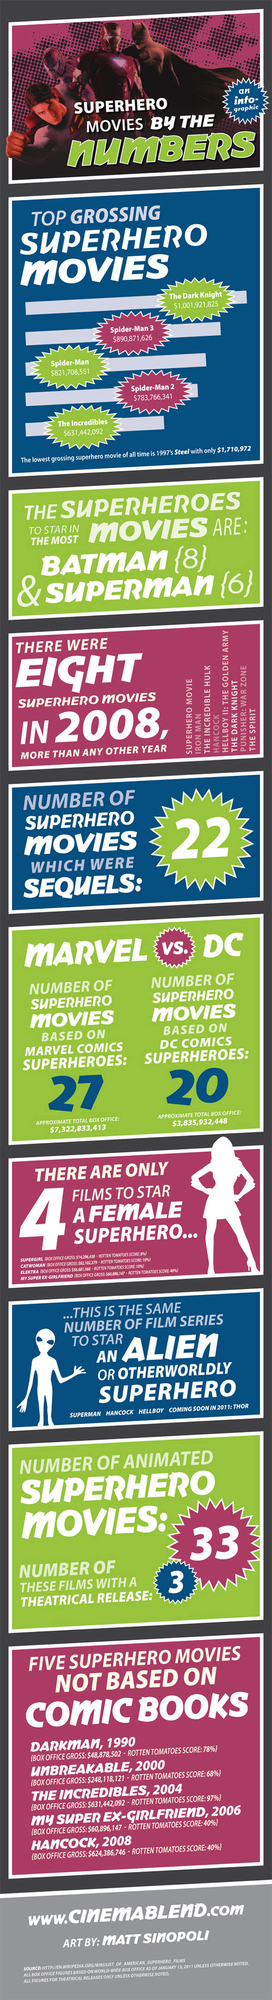 Superhero Movies By The Numbers, An Infographic